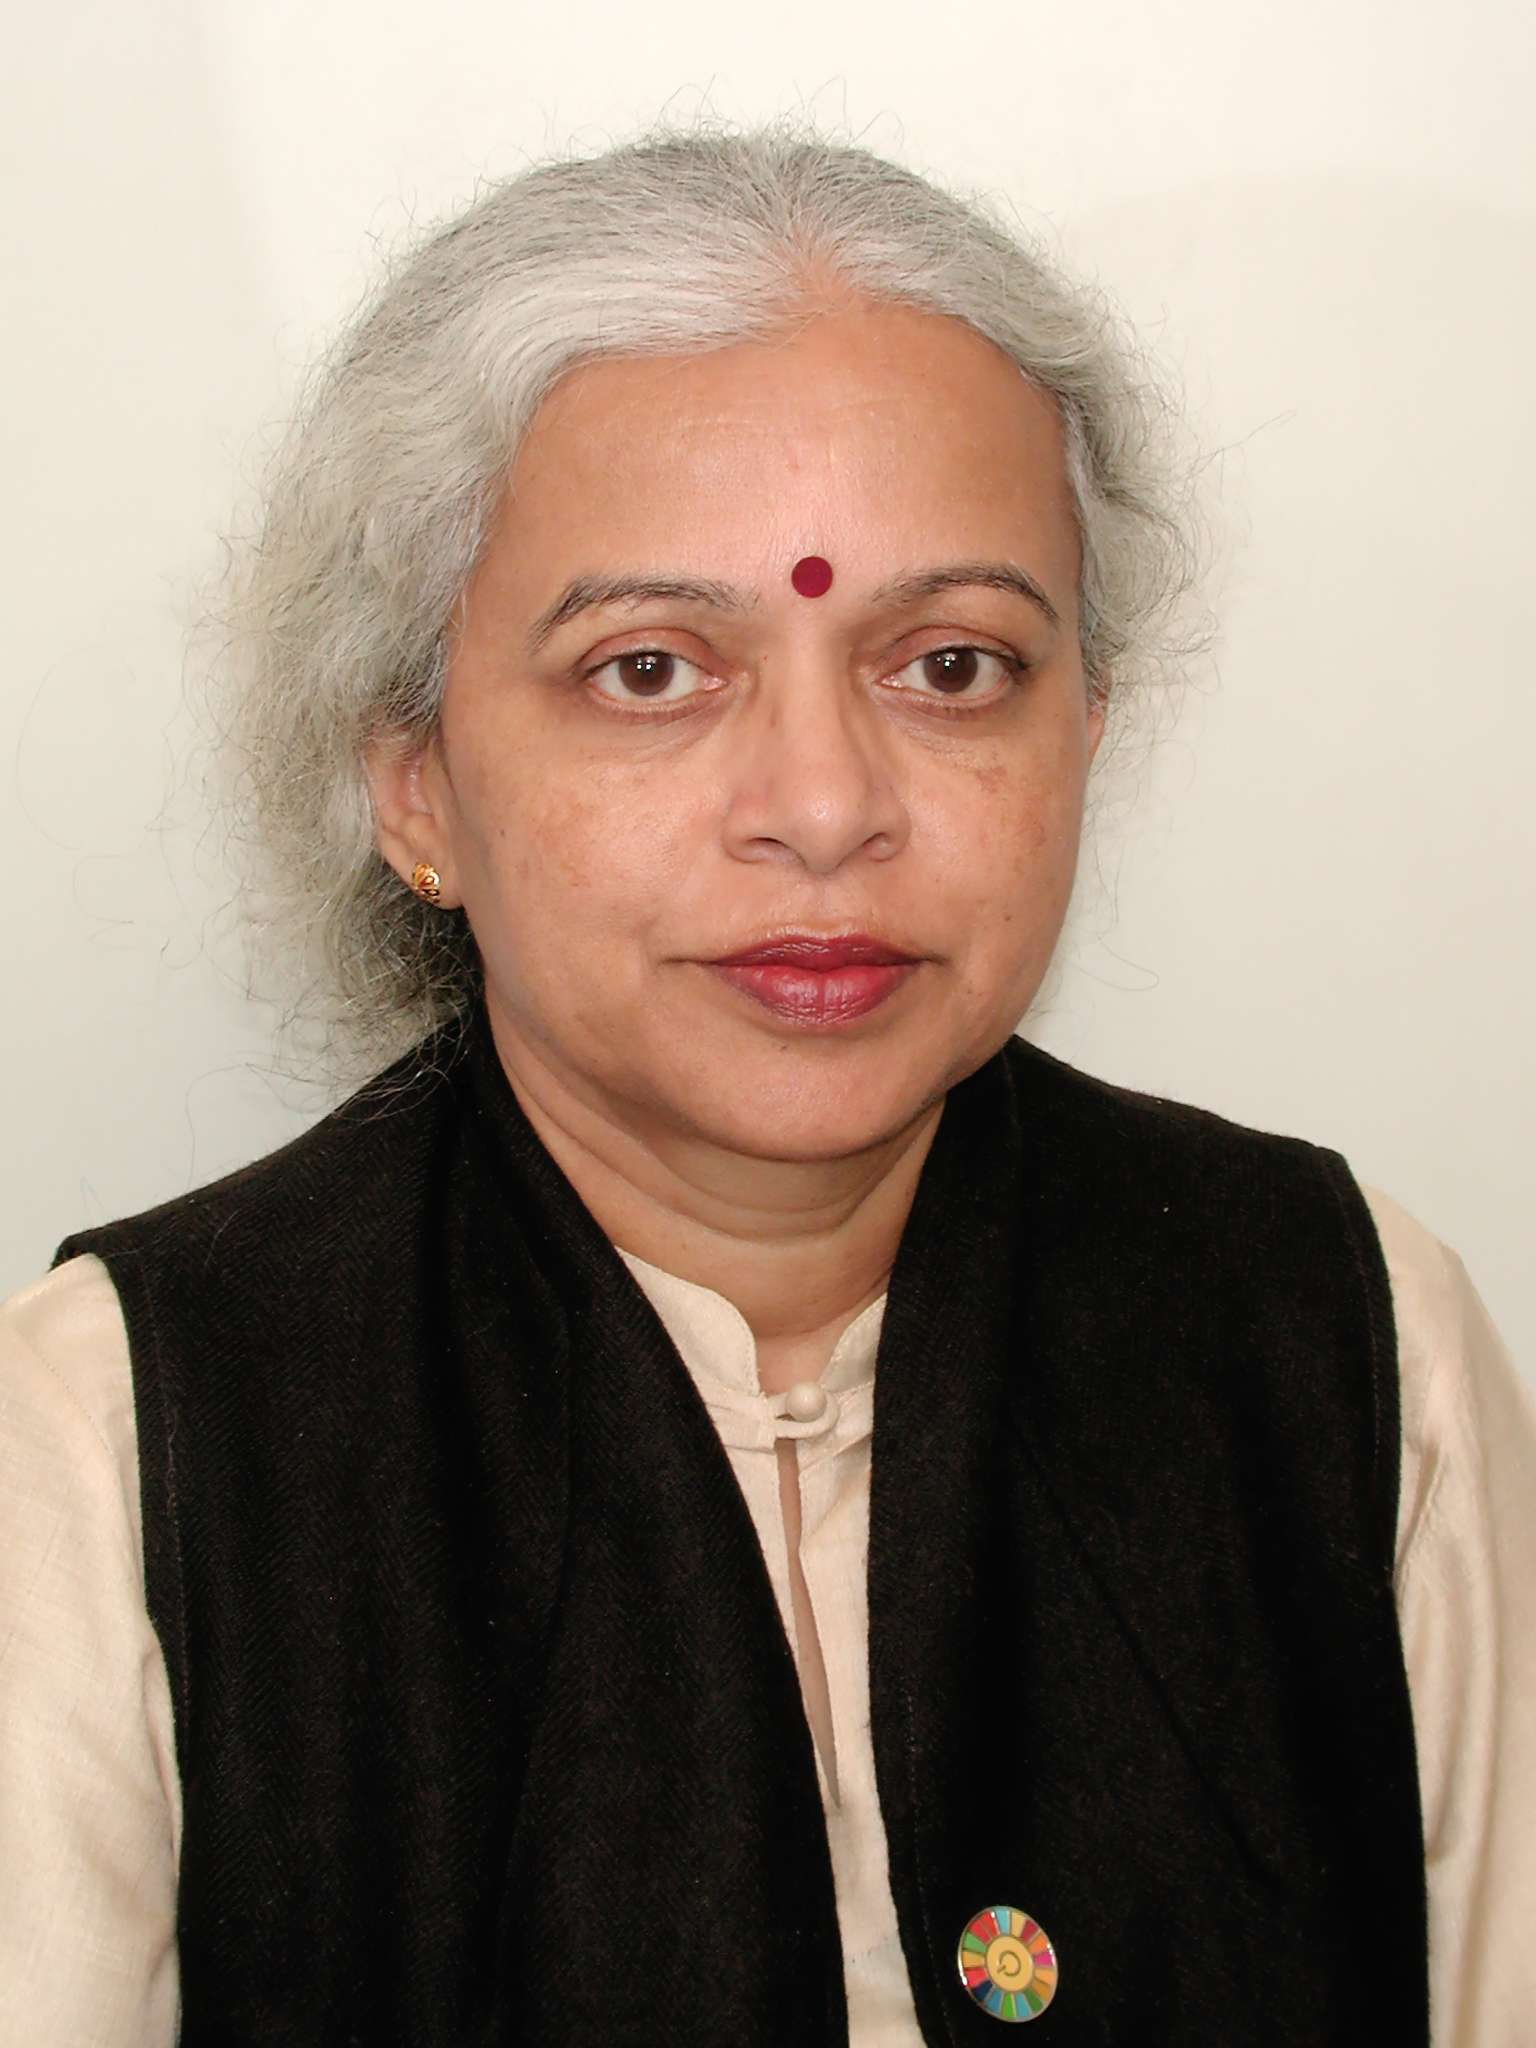 Interview with Dr. Leena Srivastava, VC, TERI School of Advanced Studies on sustainability studies